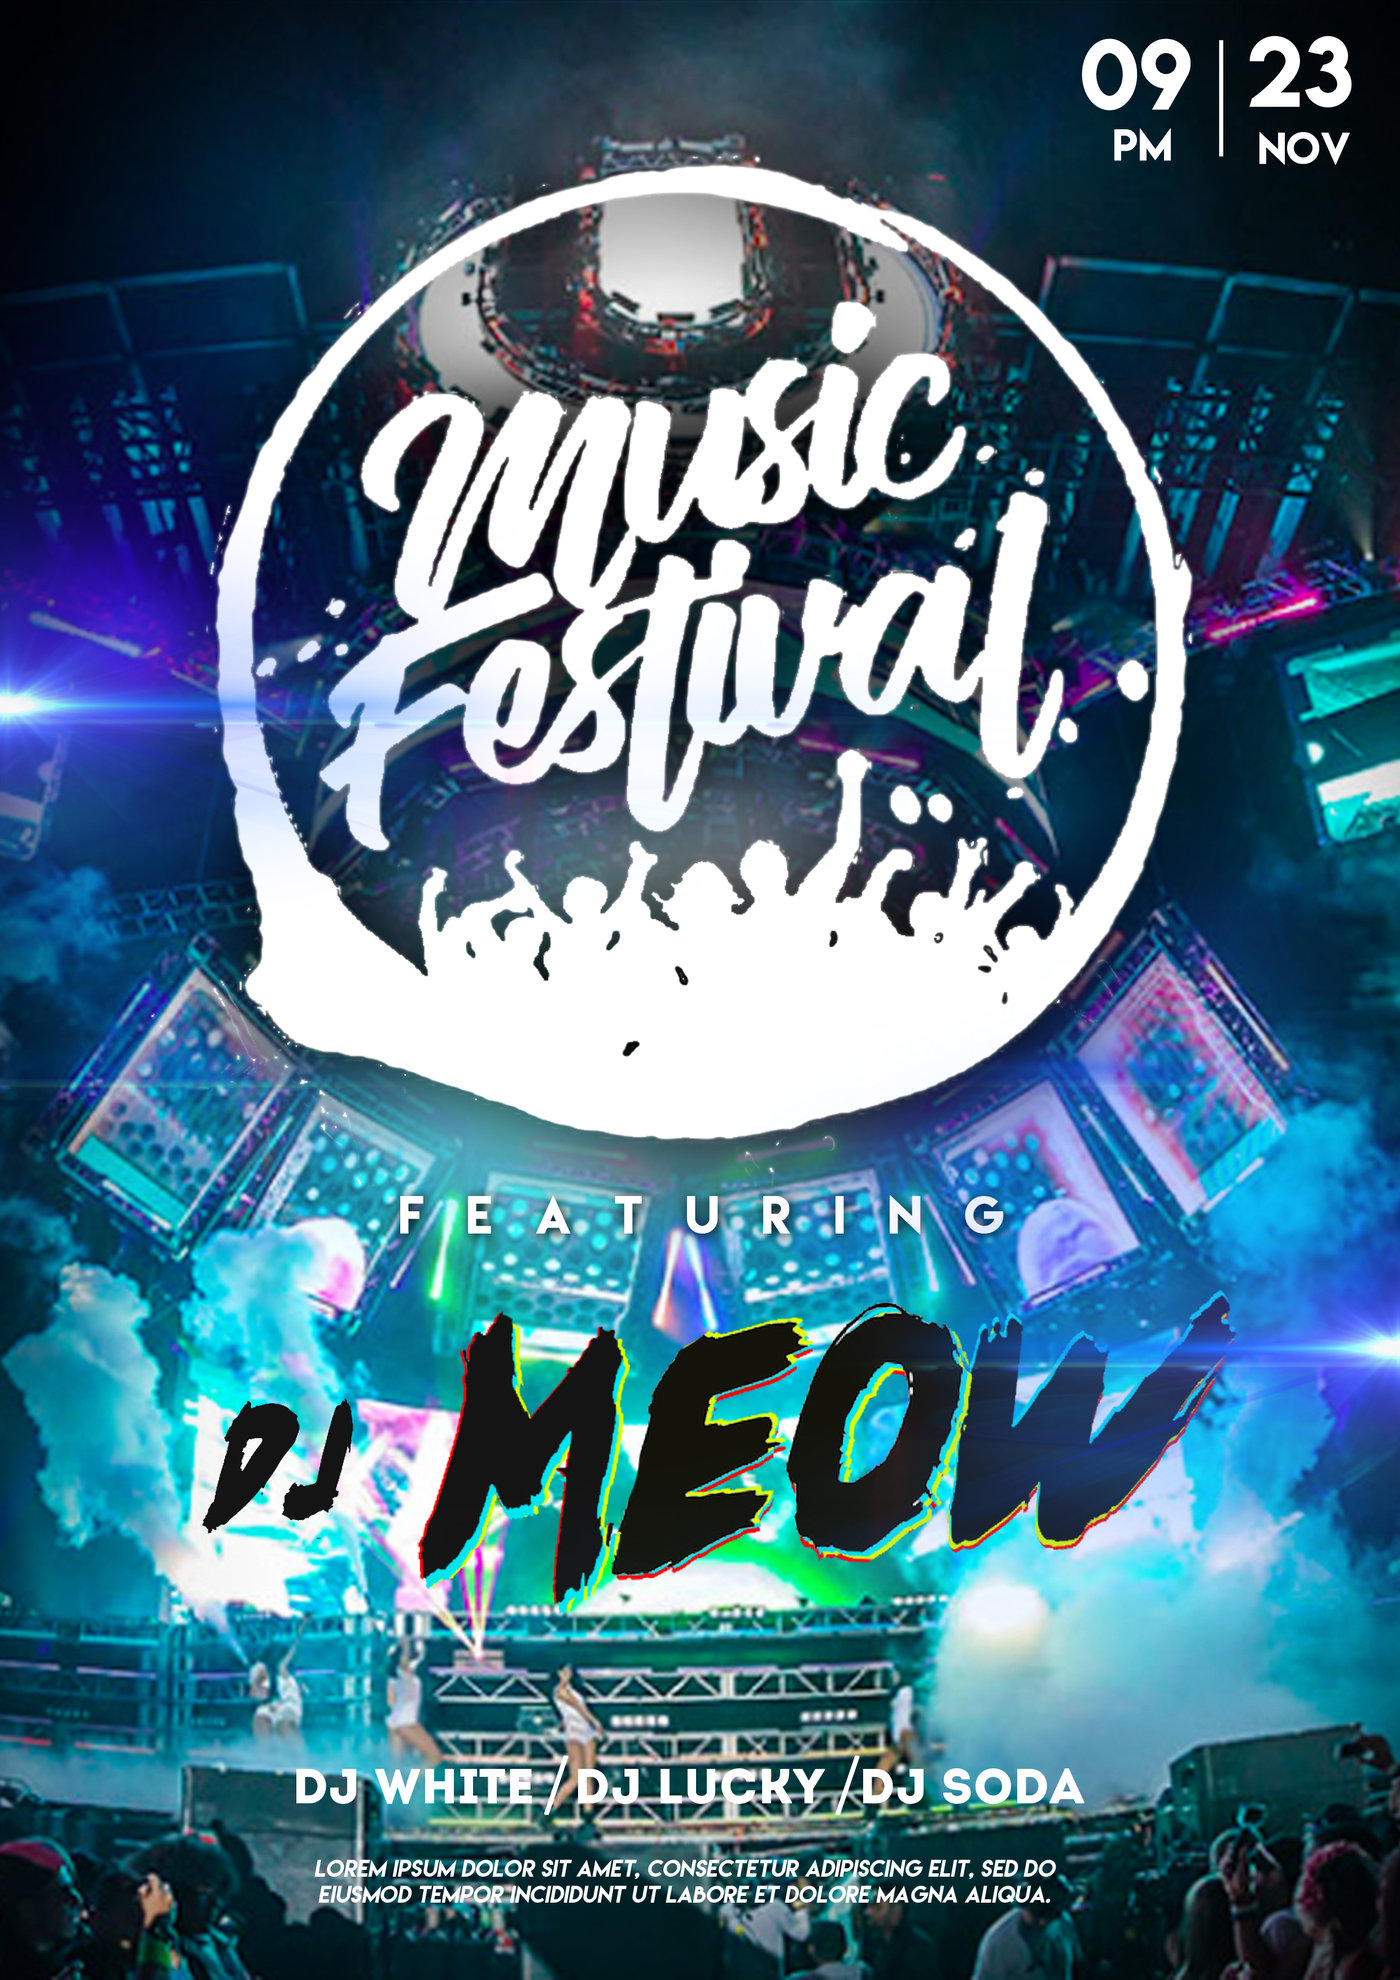 This mockup is high in resolution and photo. Music Festival Mockup Design By Elliot Kirk At Coroflot Com